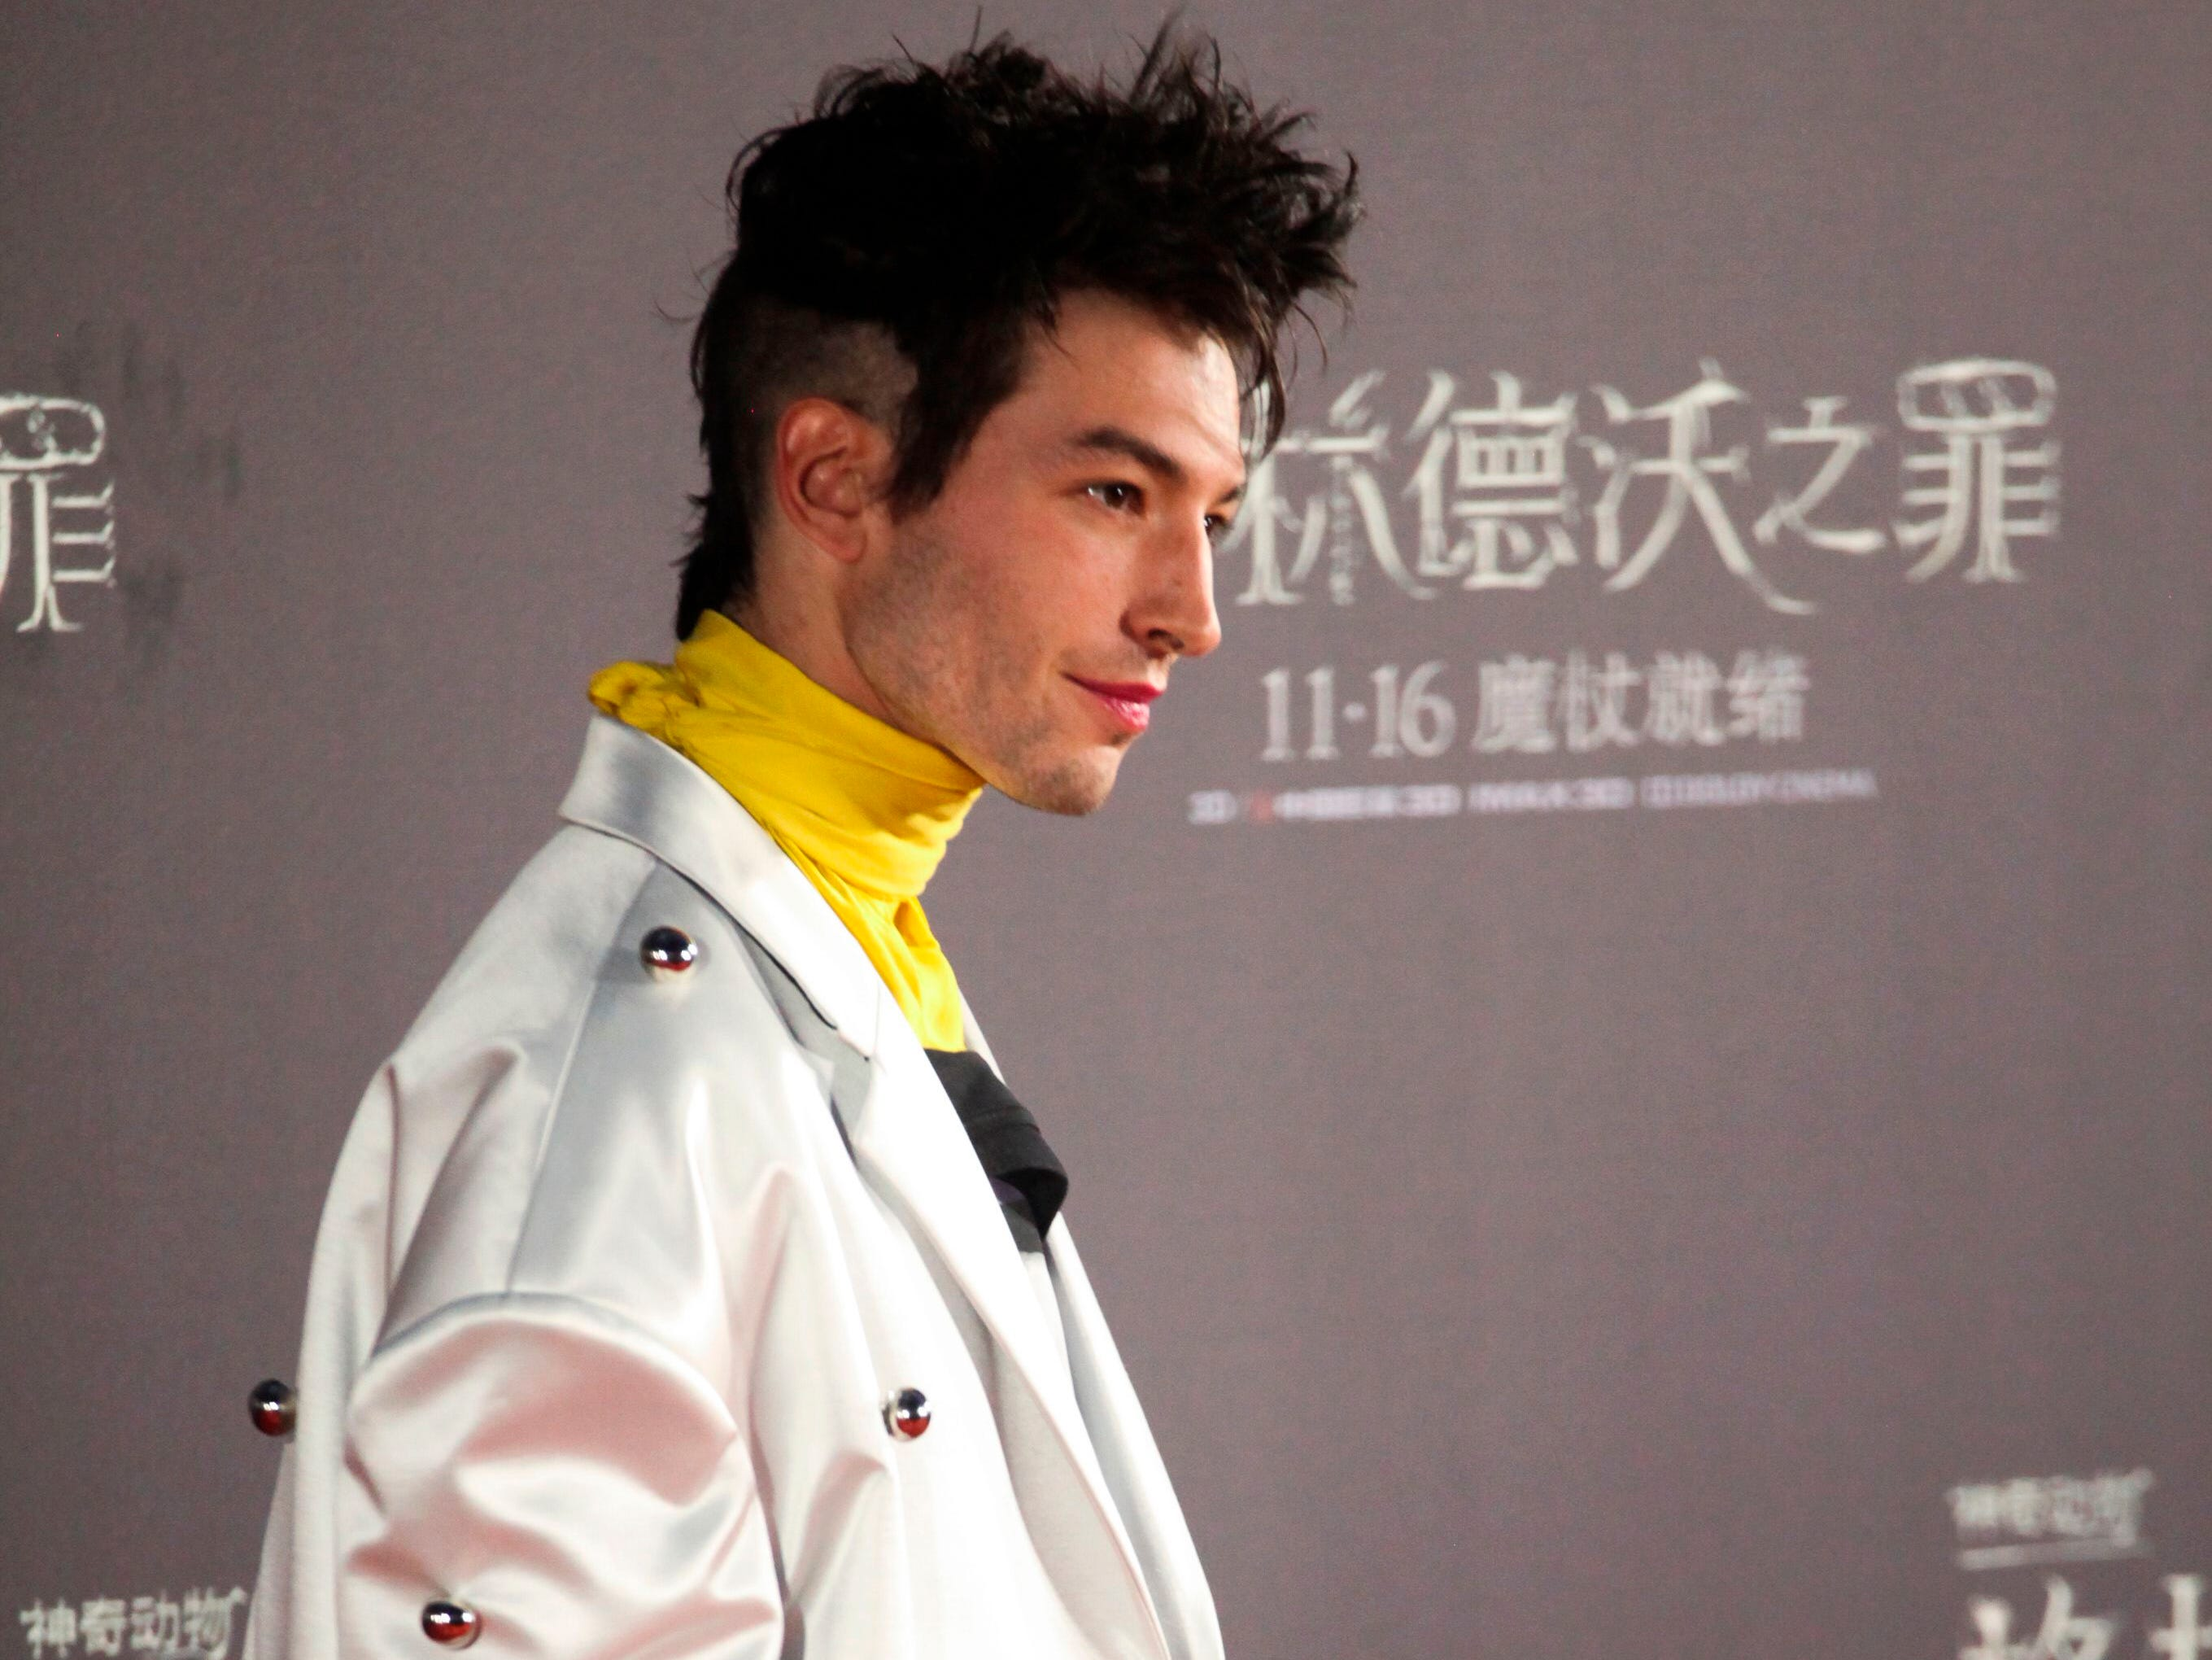 Actor Ezra Miller poses for a photo on the red carpet during a promotional event of the movie 'Fantastic Beasts: The Crimes of Grindelwald' in Beijing on October 28, 2018. (Photo by LEO RAMIREZ / AFP)LEO RAMIREZ/AFP/Getty Images ORIG FILE ID: AFP_1AD9ZZ